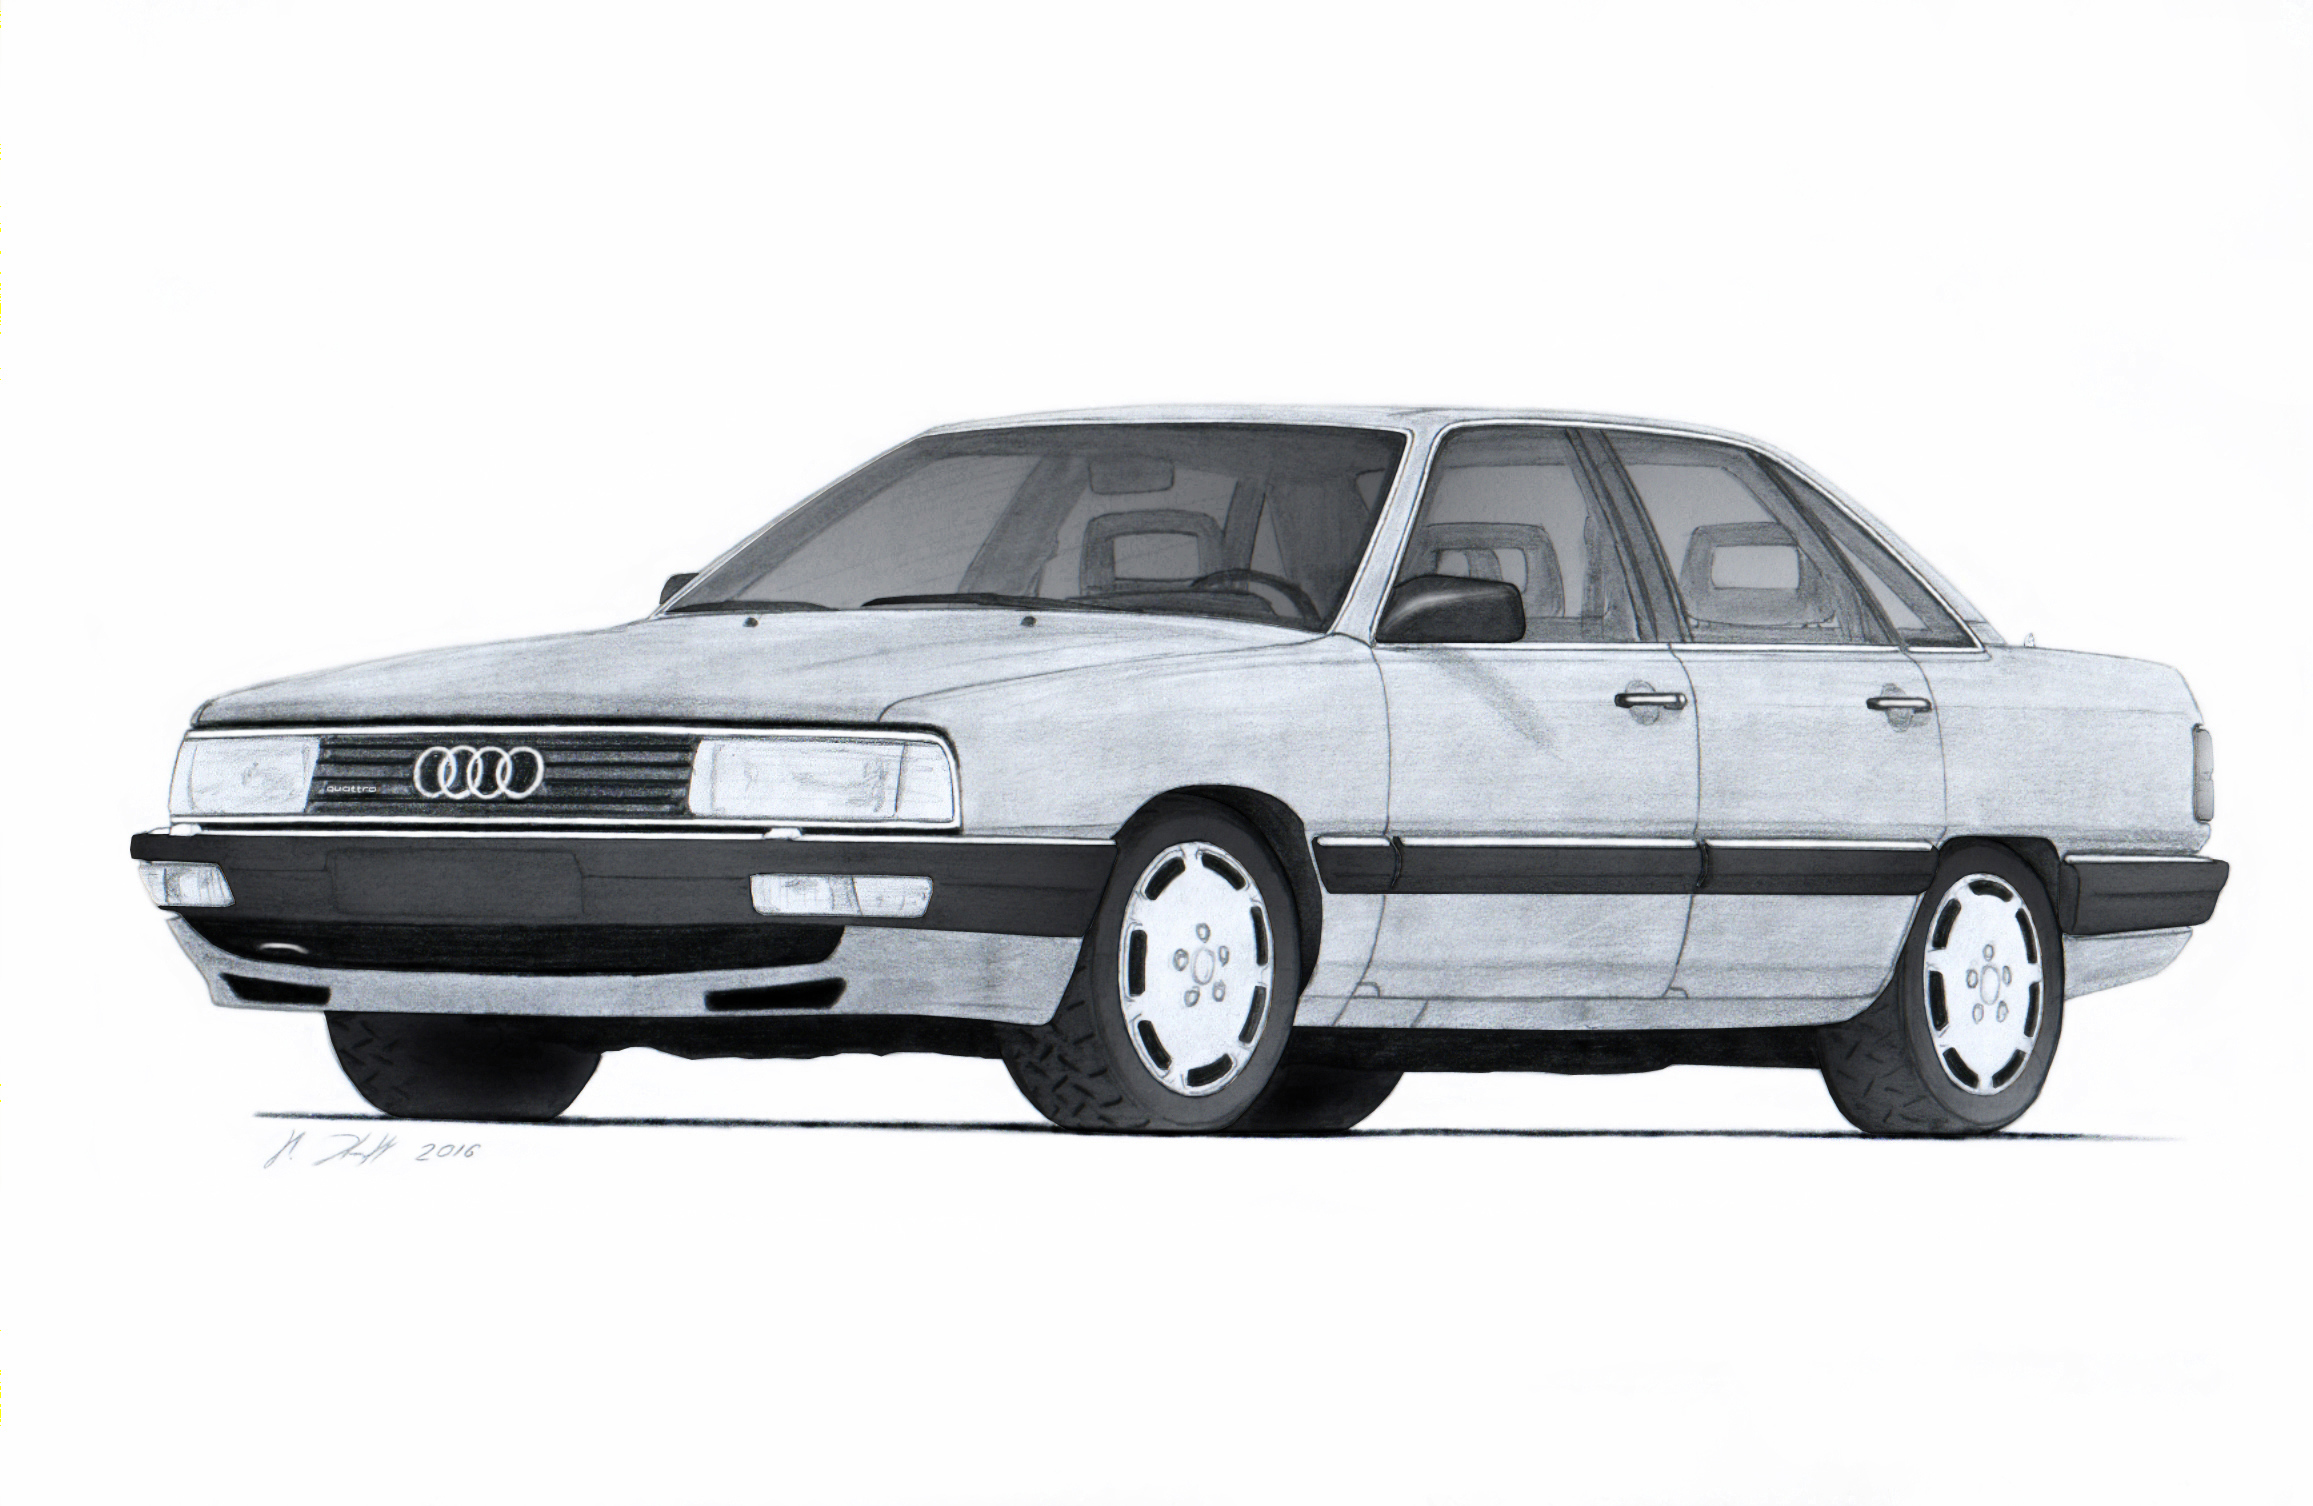 audi 200 turbo quattro 44q drawing by vertualissimo on deviantart. Black Bedroom Furniture Sets. Home Design Ideas